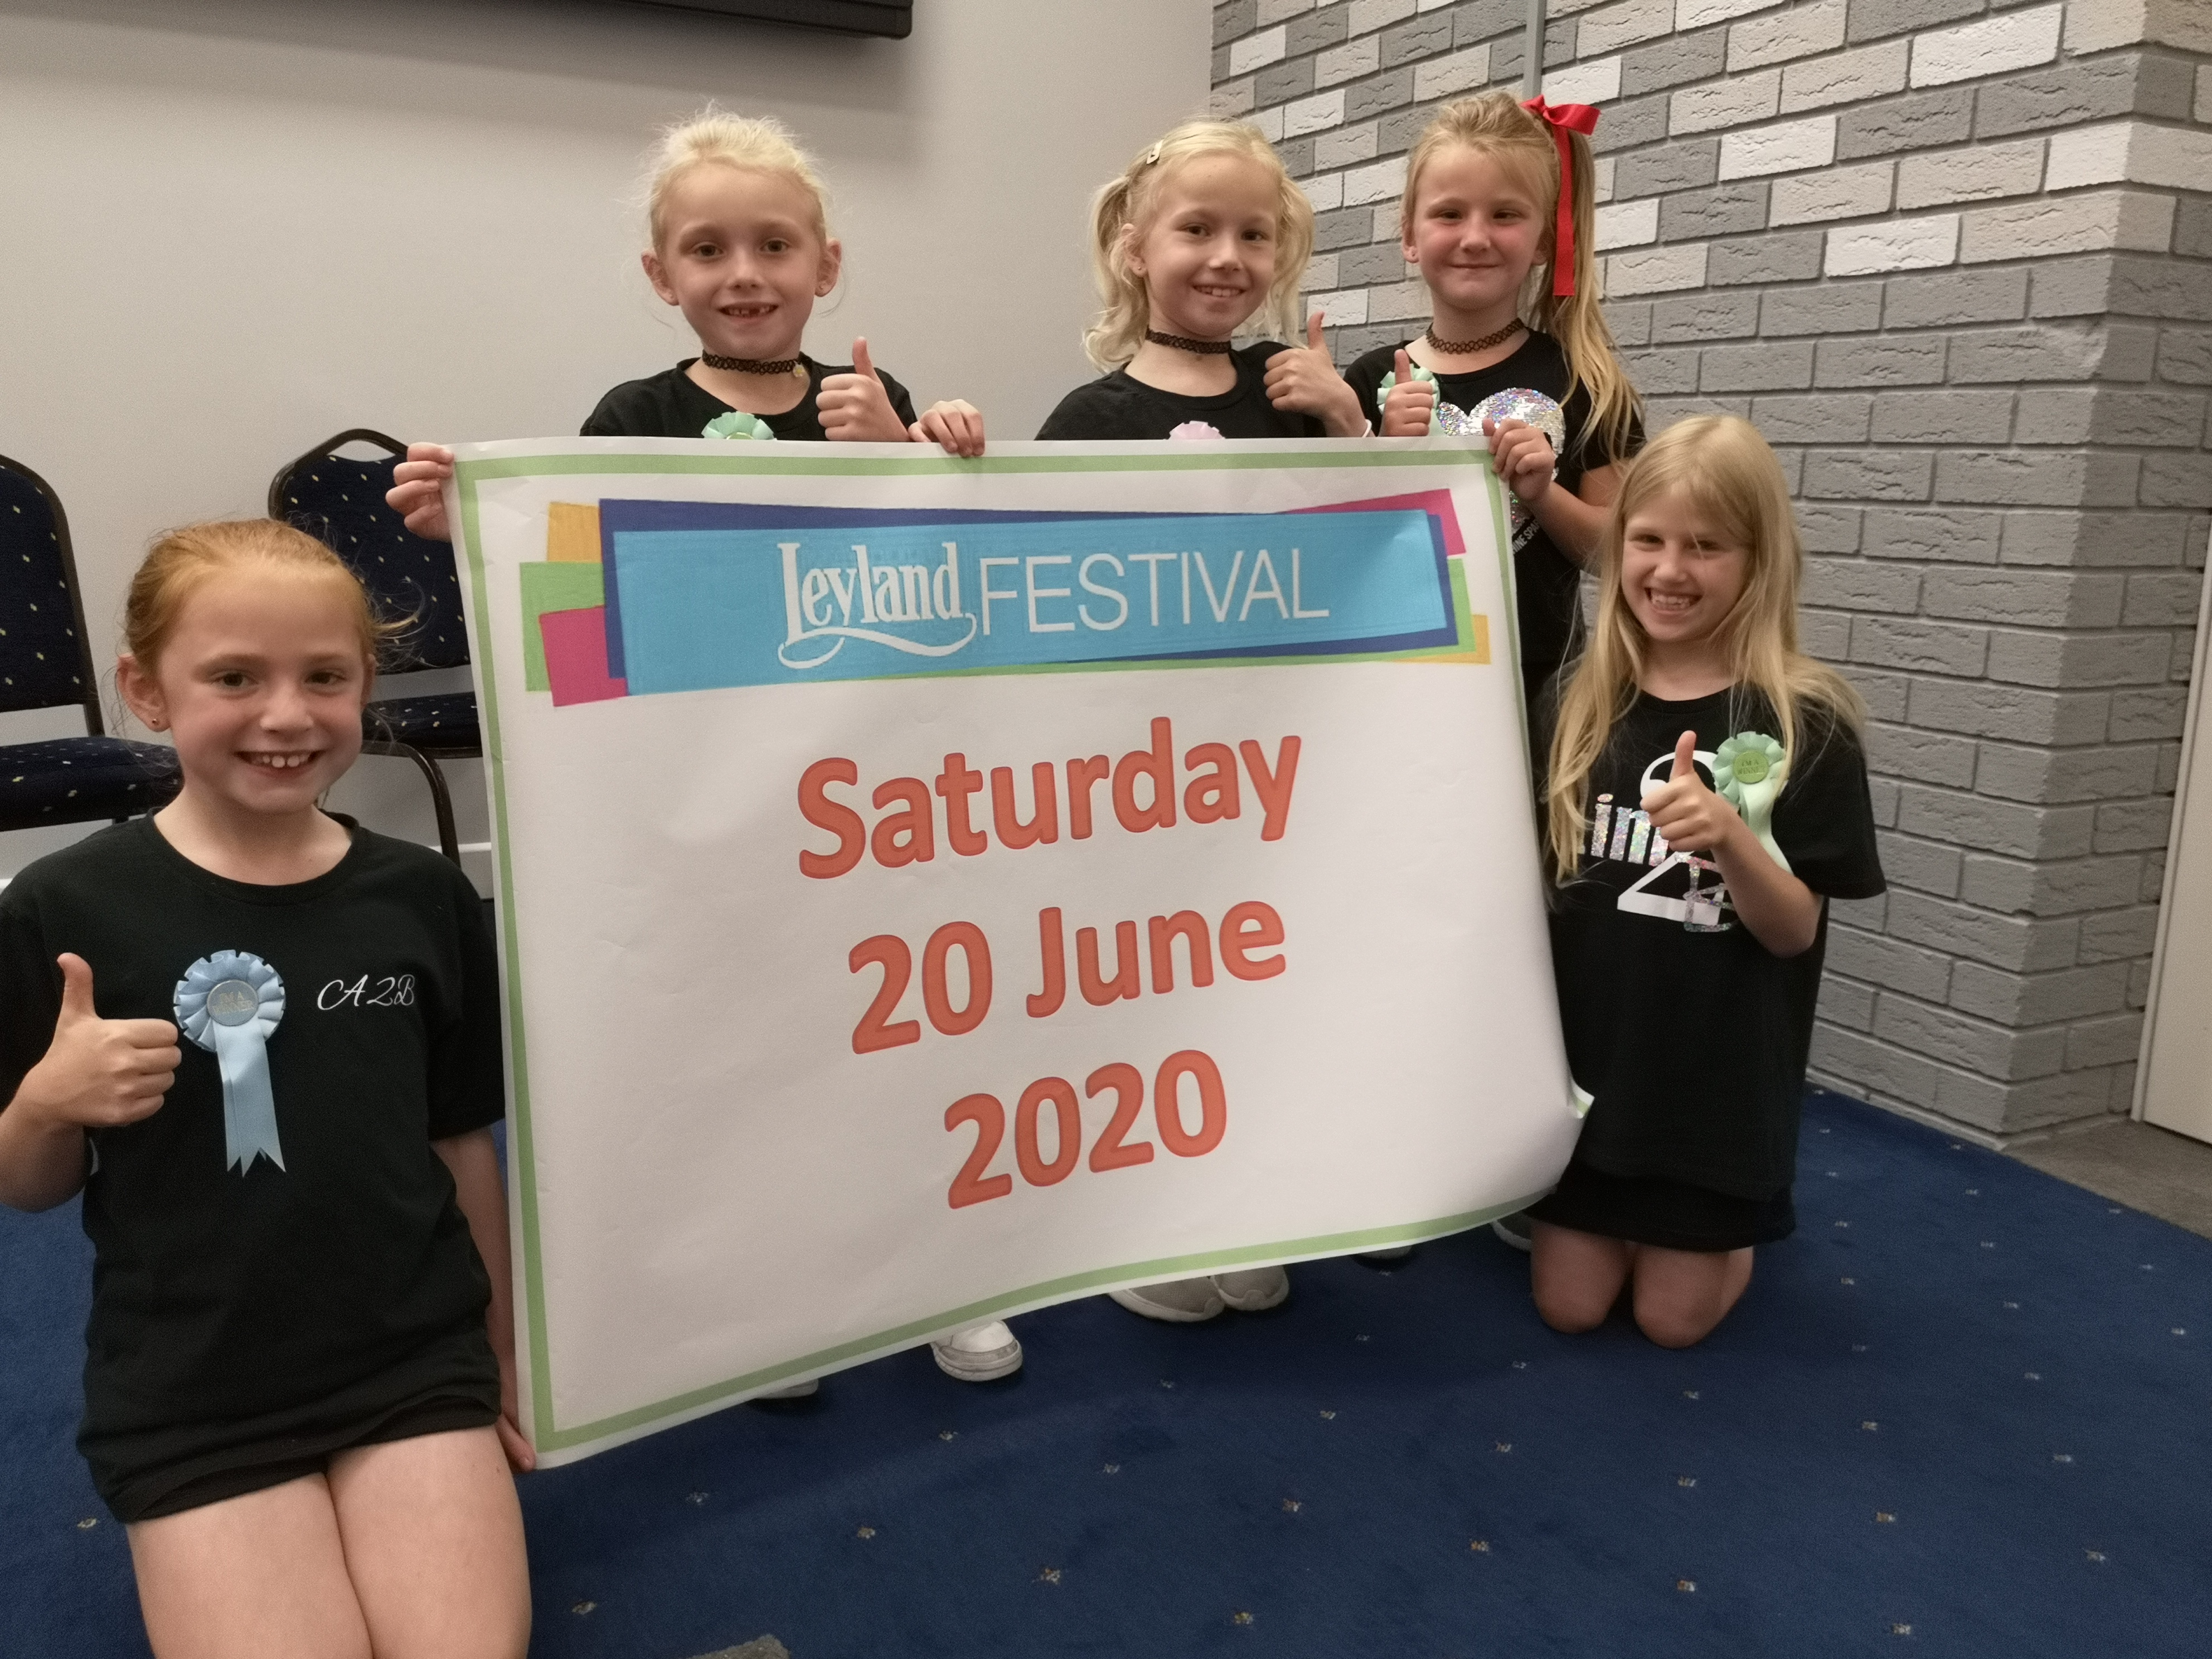 save the date for the 2020 Leyland Festival